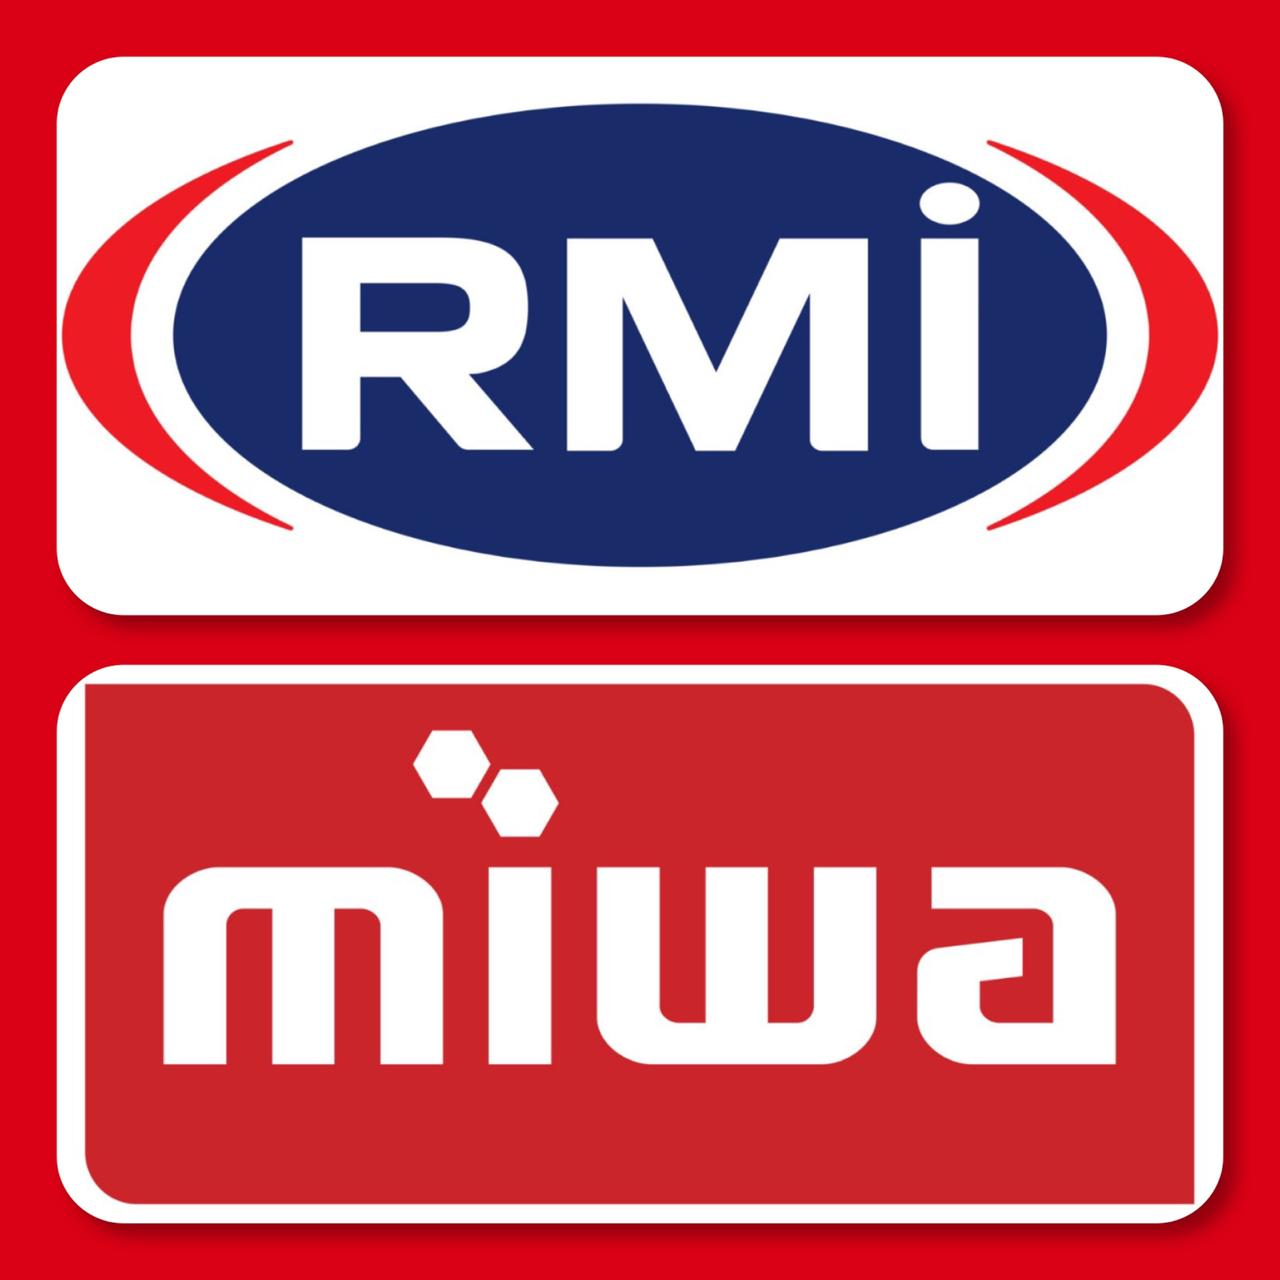 Discounted Prices for MIWA Members